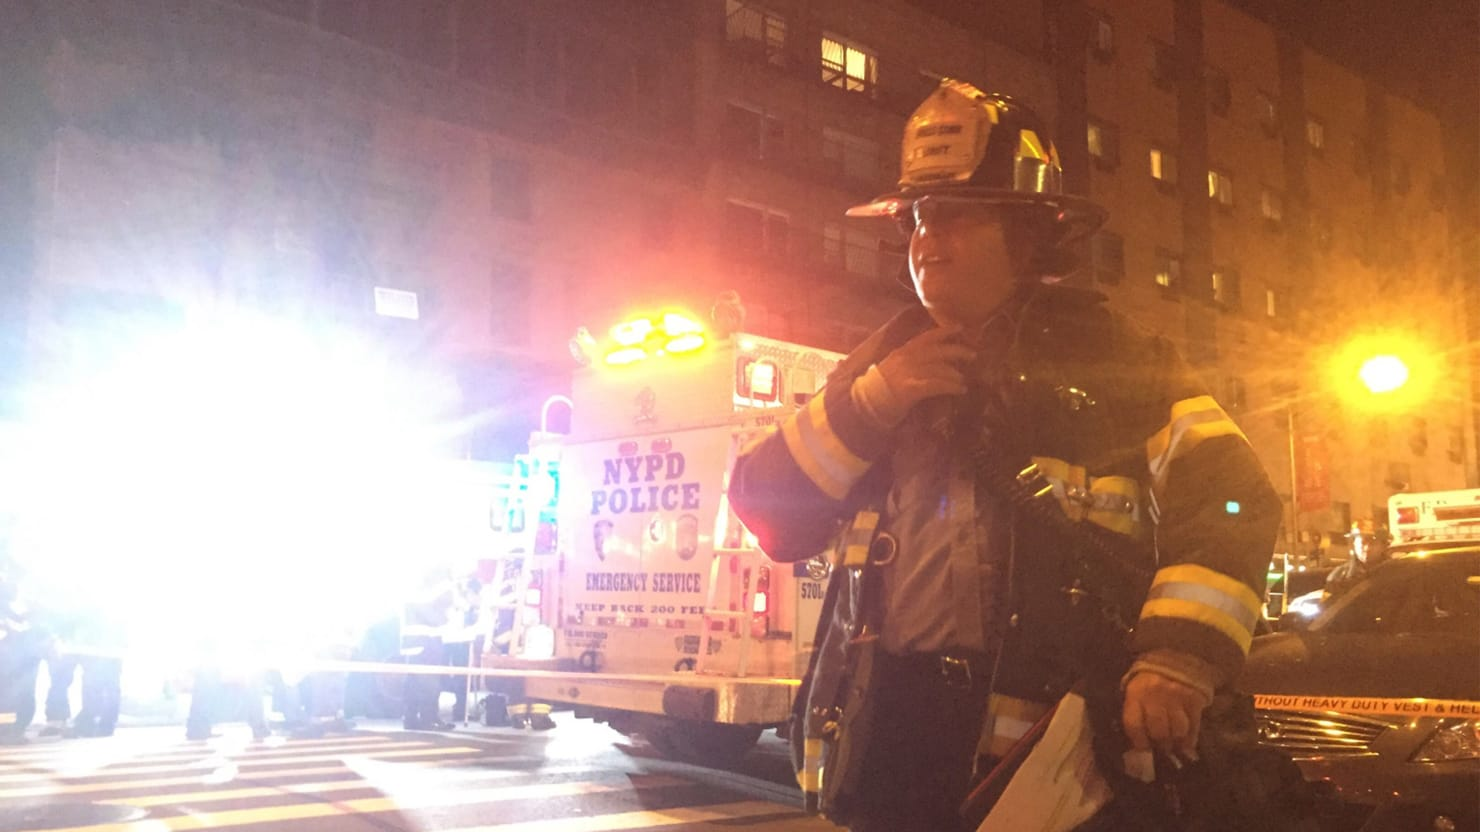 Manhattan Explosion Injures Dozens; Mayor Says It Appears to Be 'Intentional Act'